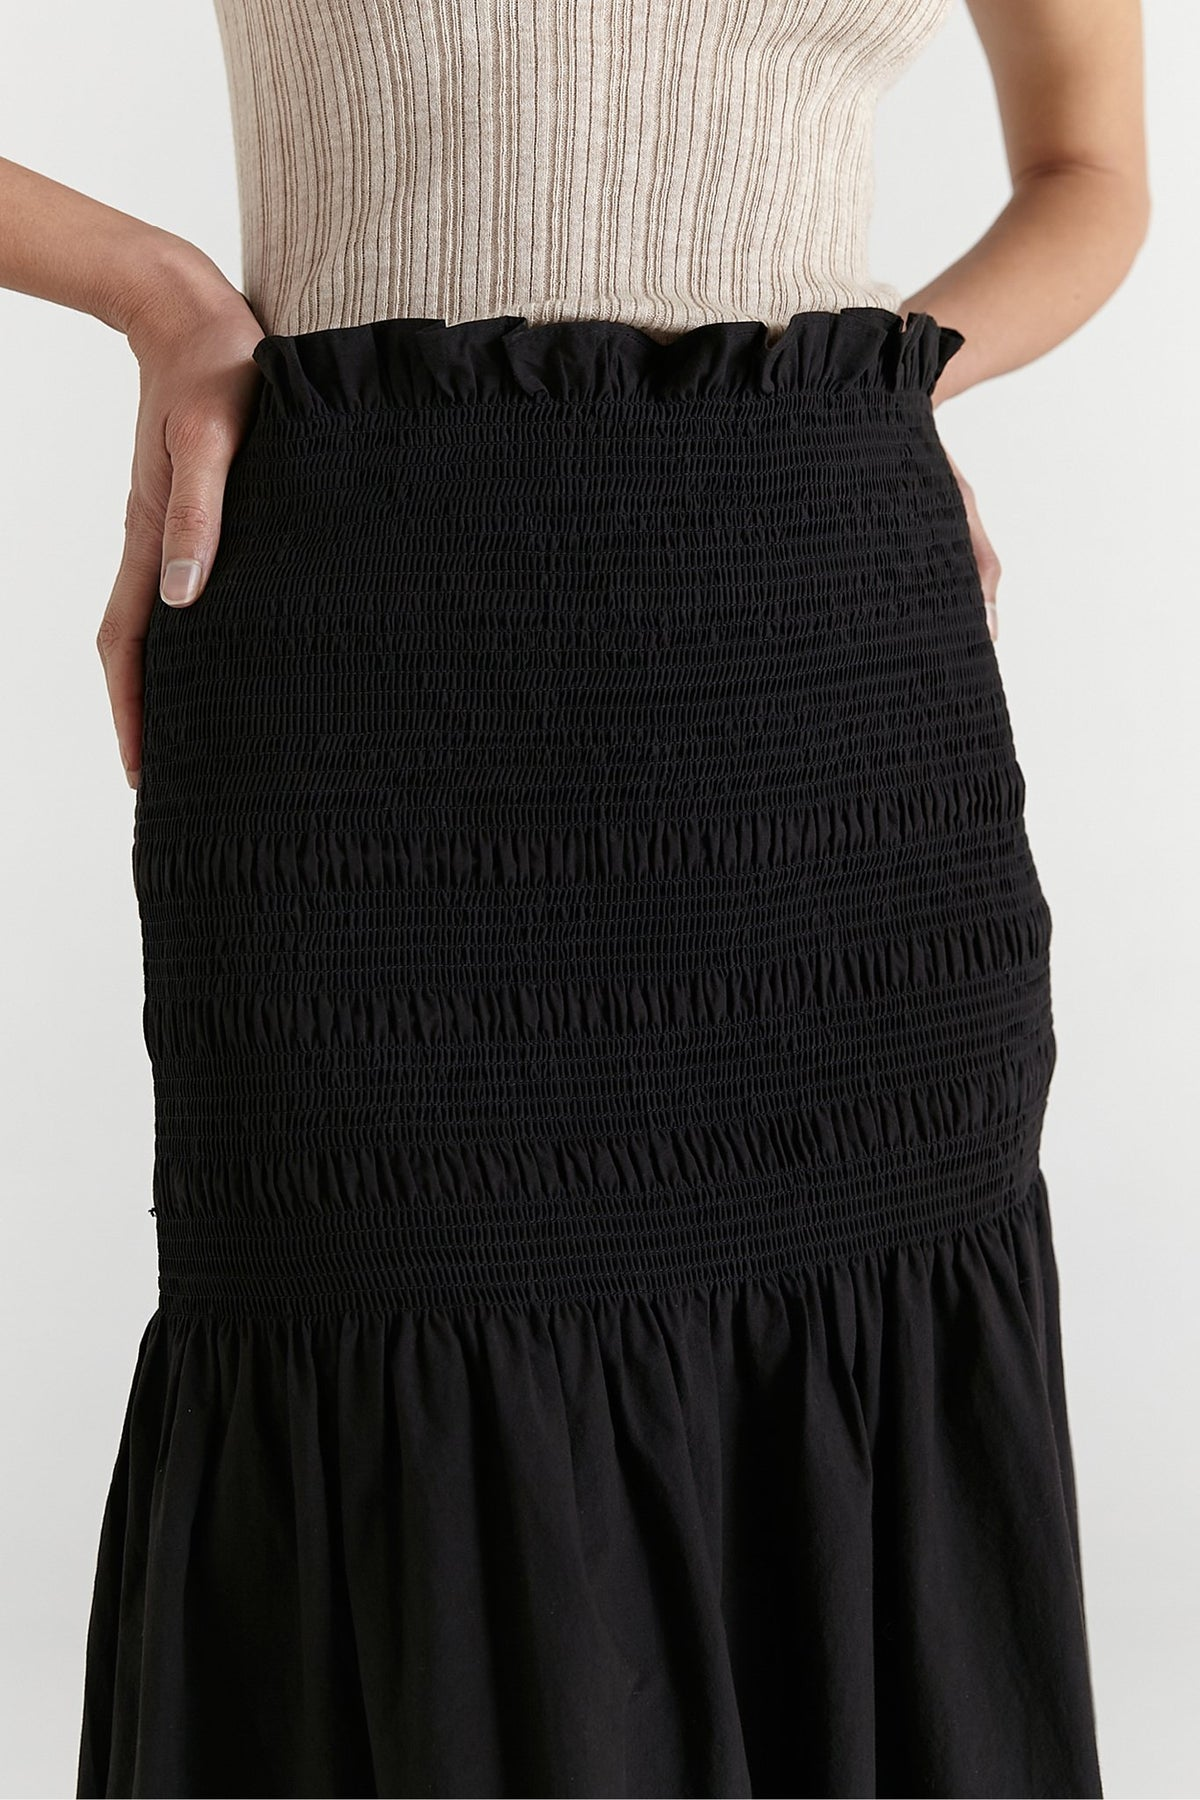 Marle Janelle Skirt // Black